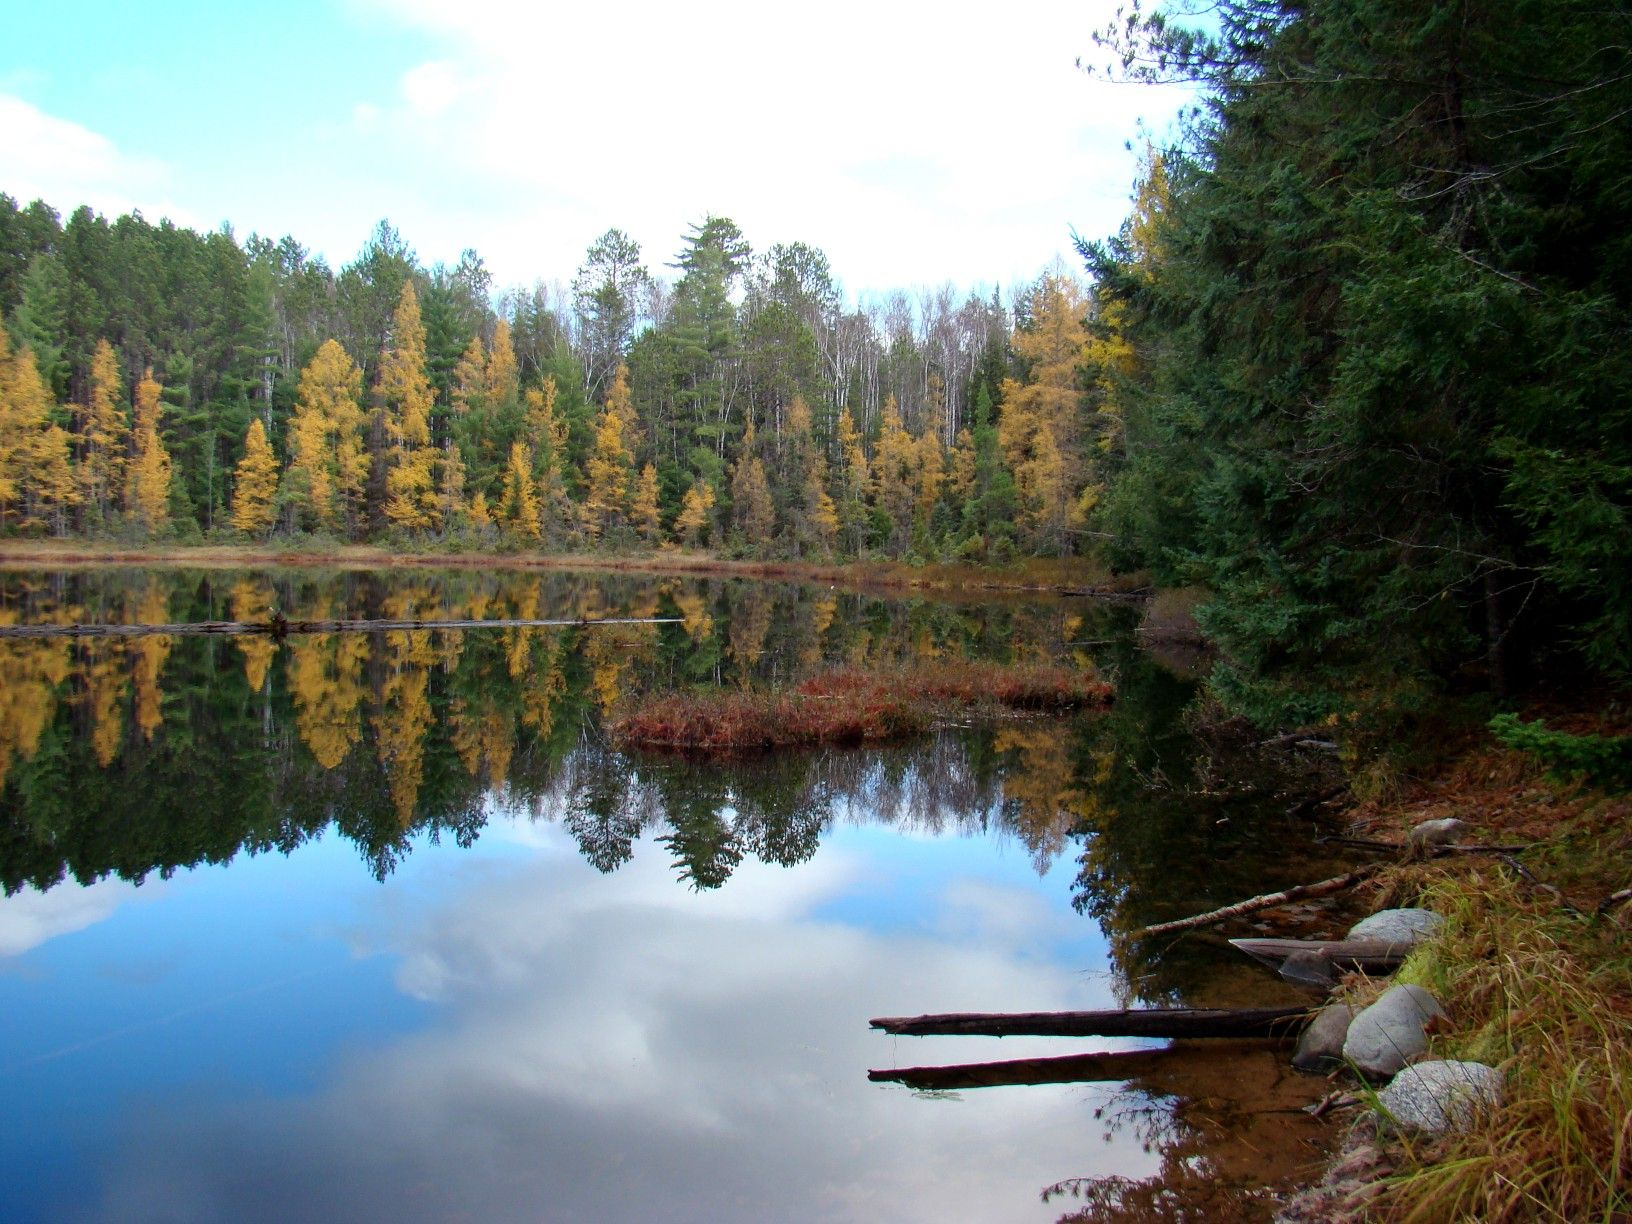 Pin by Noah on adventure Vilas county, Devils lake